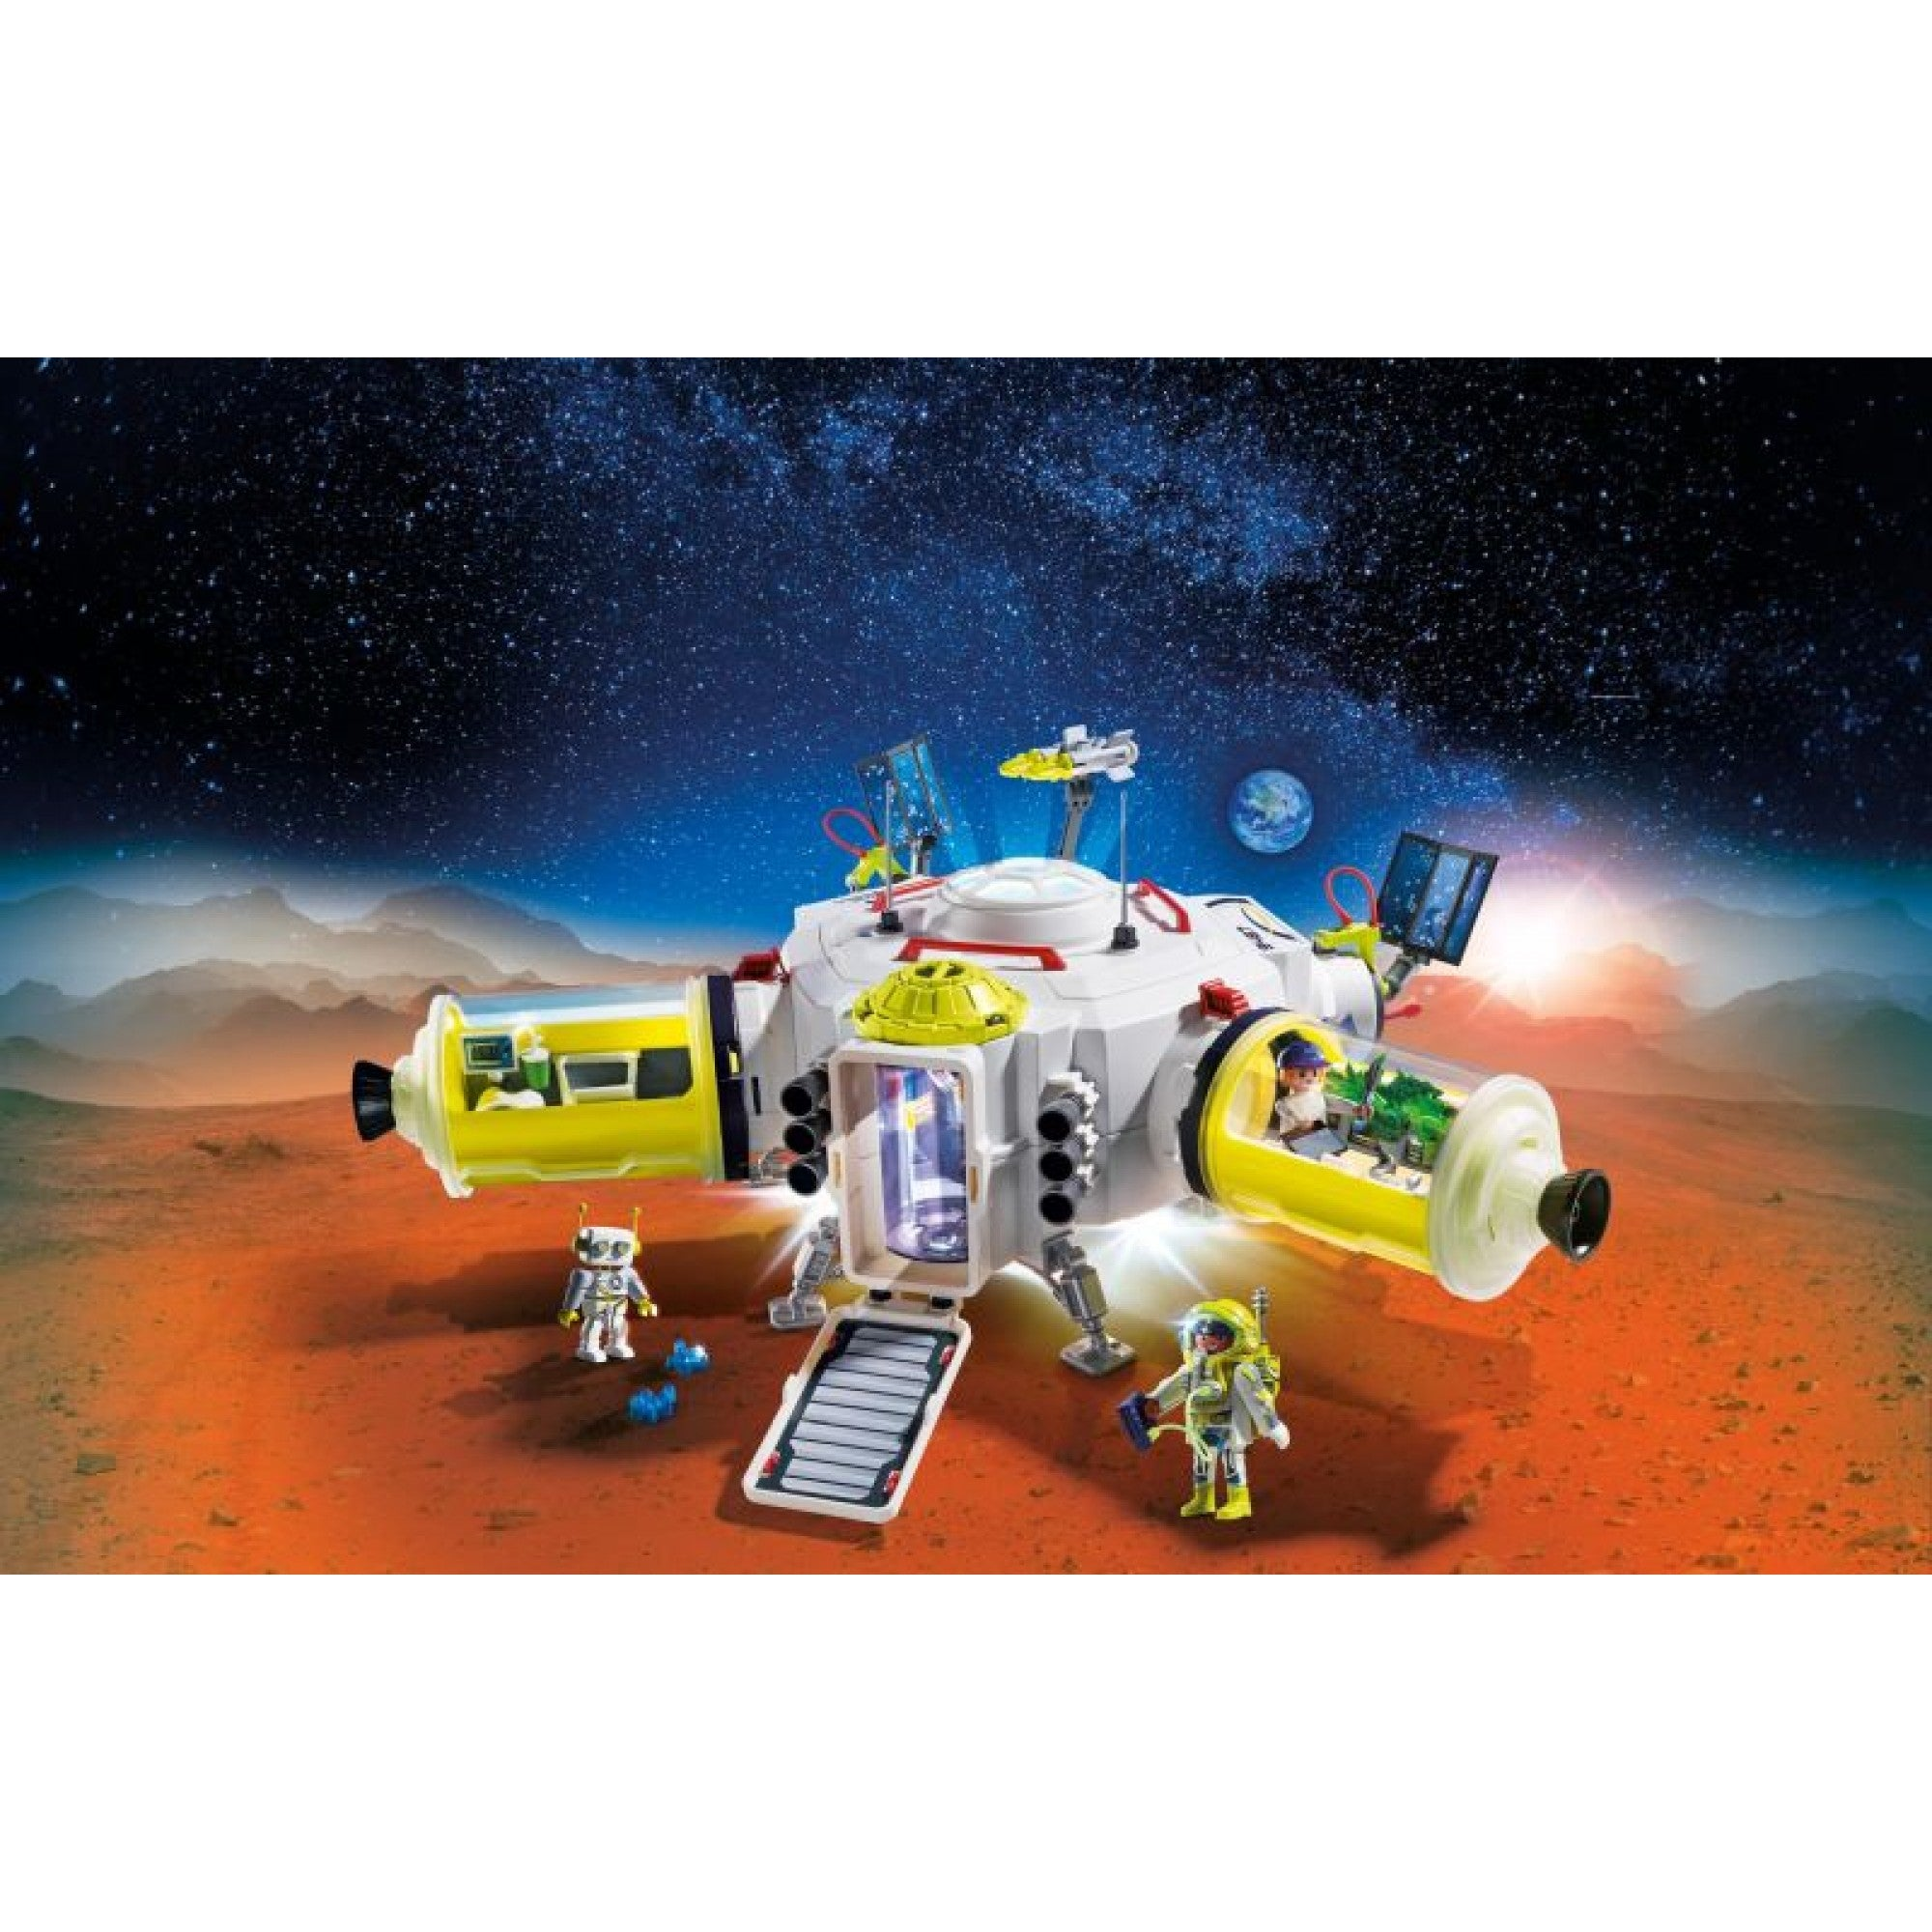 Mars Space Station - Playmobil